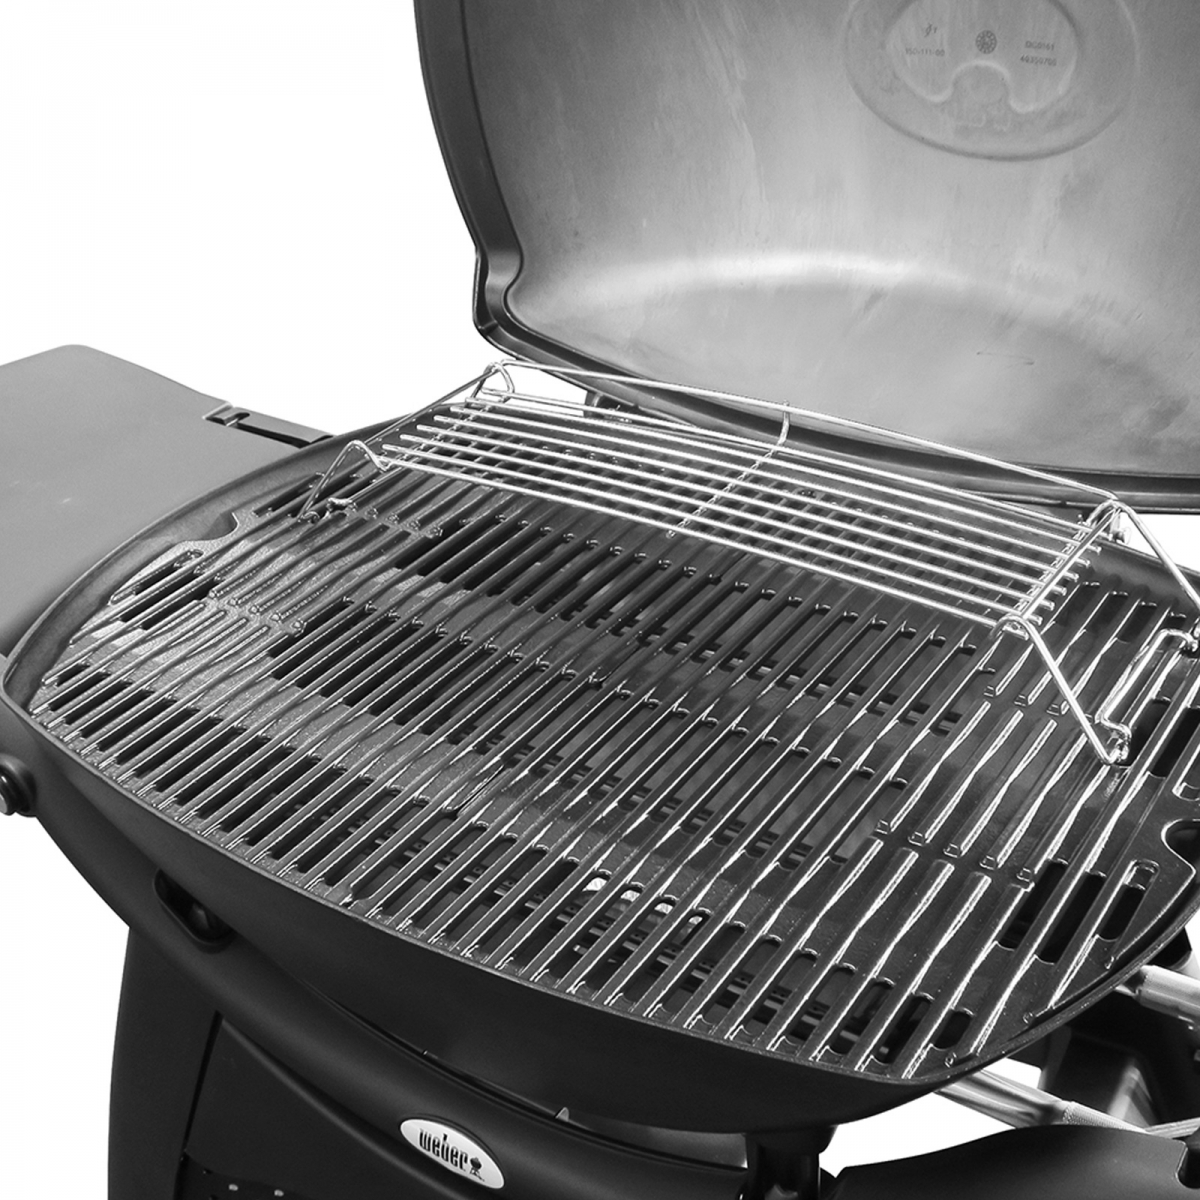 weber q 3200 gas grill weber barbecue a gas il mondo del barbecue. Black Bedroom Furniture Sets. Home Design Ideas